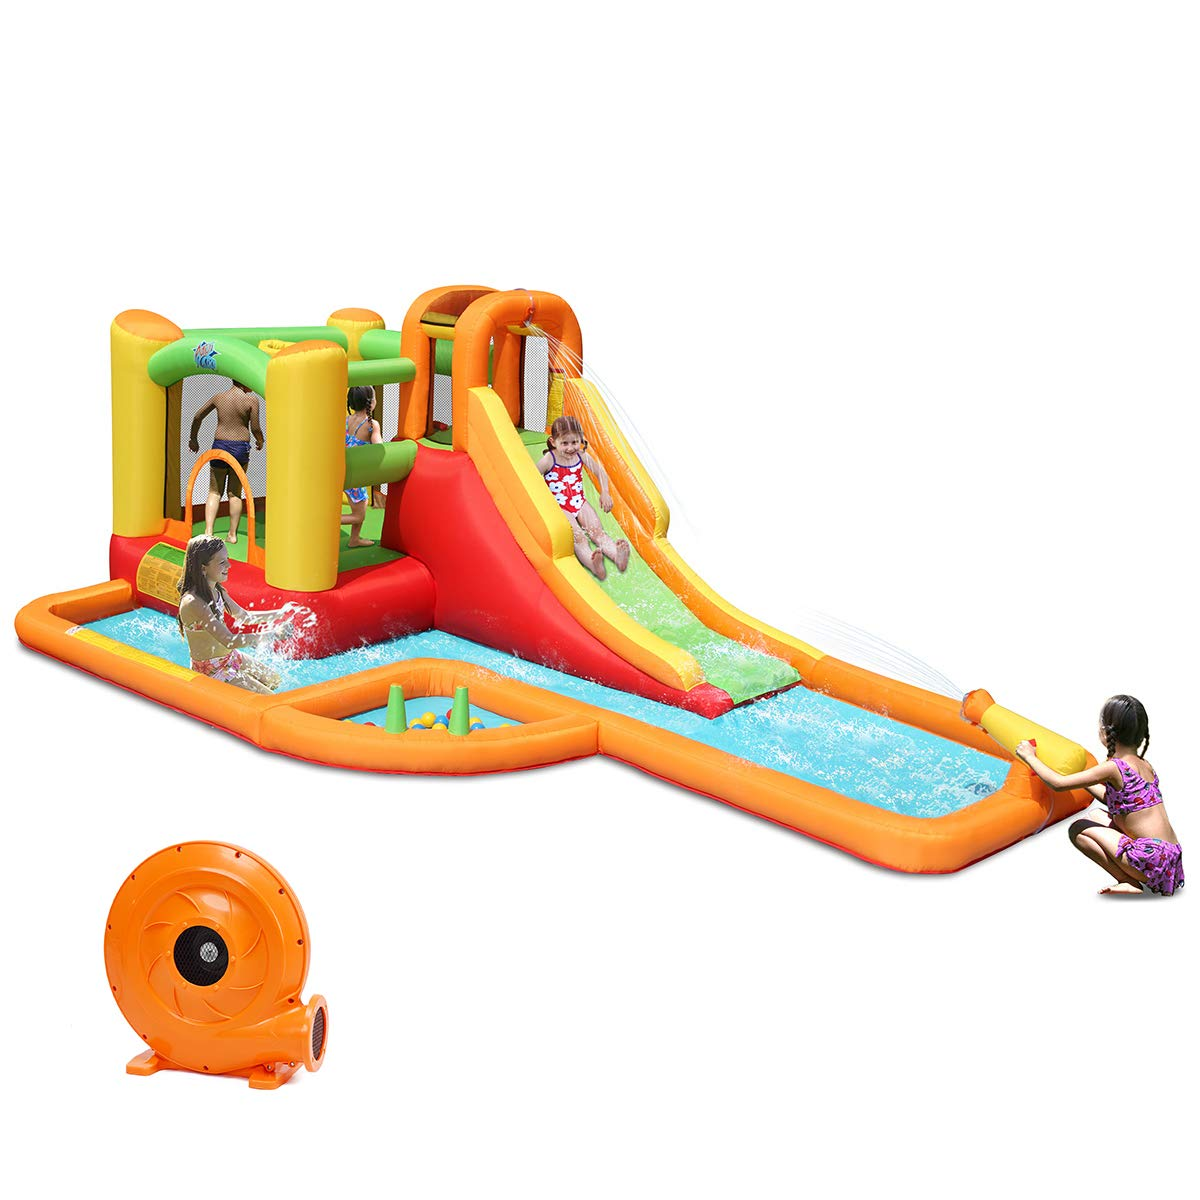 Costzon Inflatable Slide Bouncer, Bounce House with Climbing Wall, Jump Area, Basketball Hoop, Splash Pool, Including Oxford Carry Bag, Repairing Kit, Stakes, Ocean Balls, Water Pipe, 780W Air Blower by Costzon